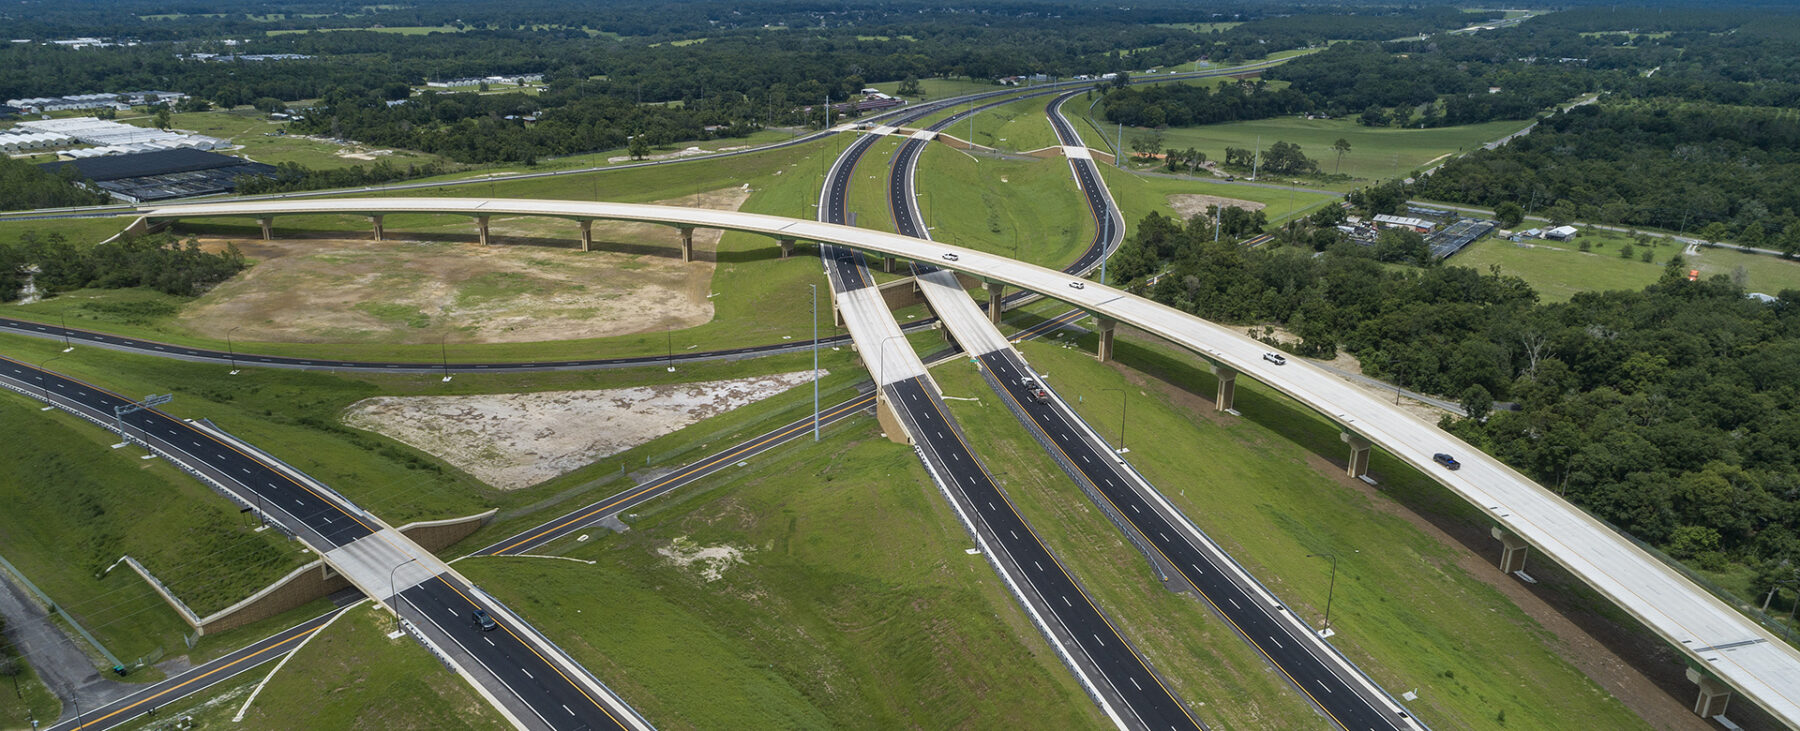 Ariel view of Central Florida Wekiva Expressway